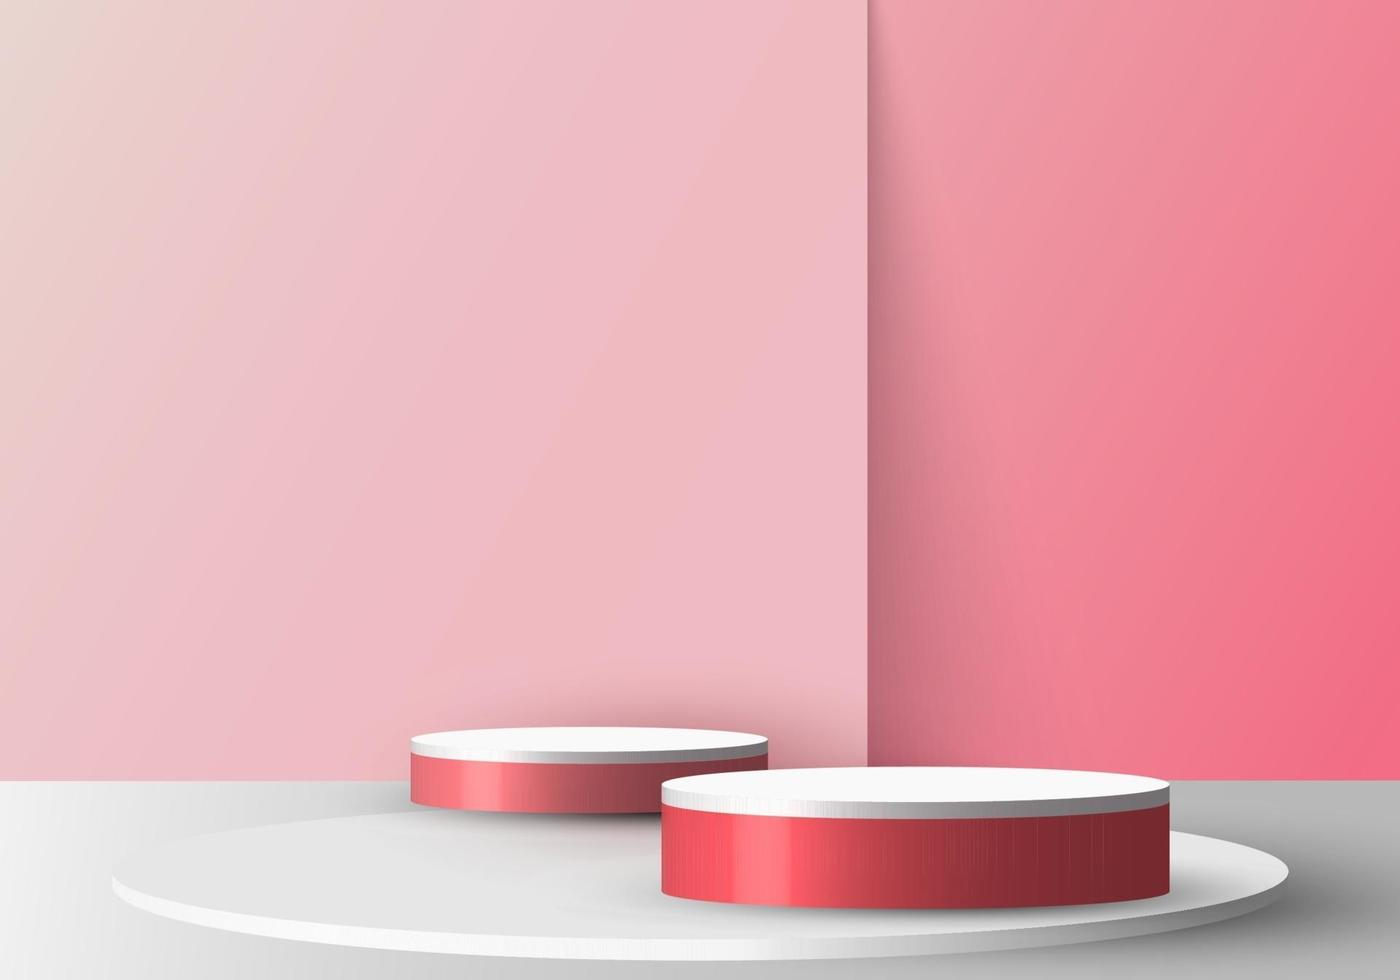 3D realistic empty red and white round pedestal mockup on soft pink backdrop vector